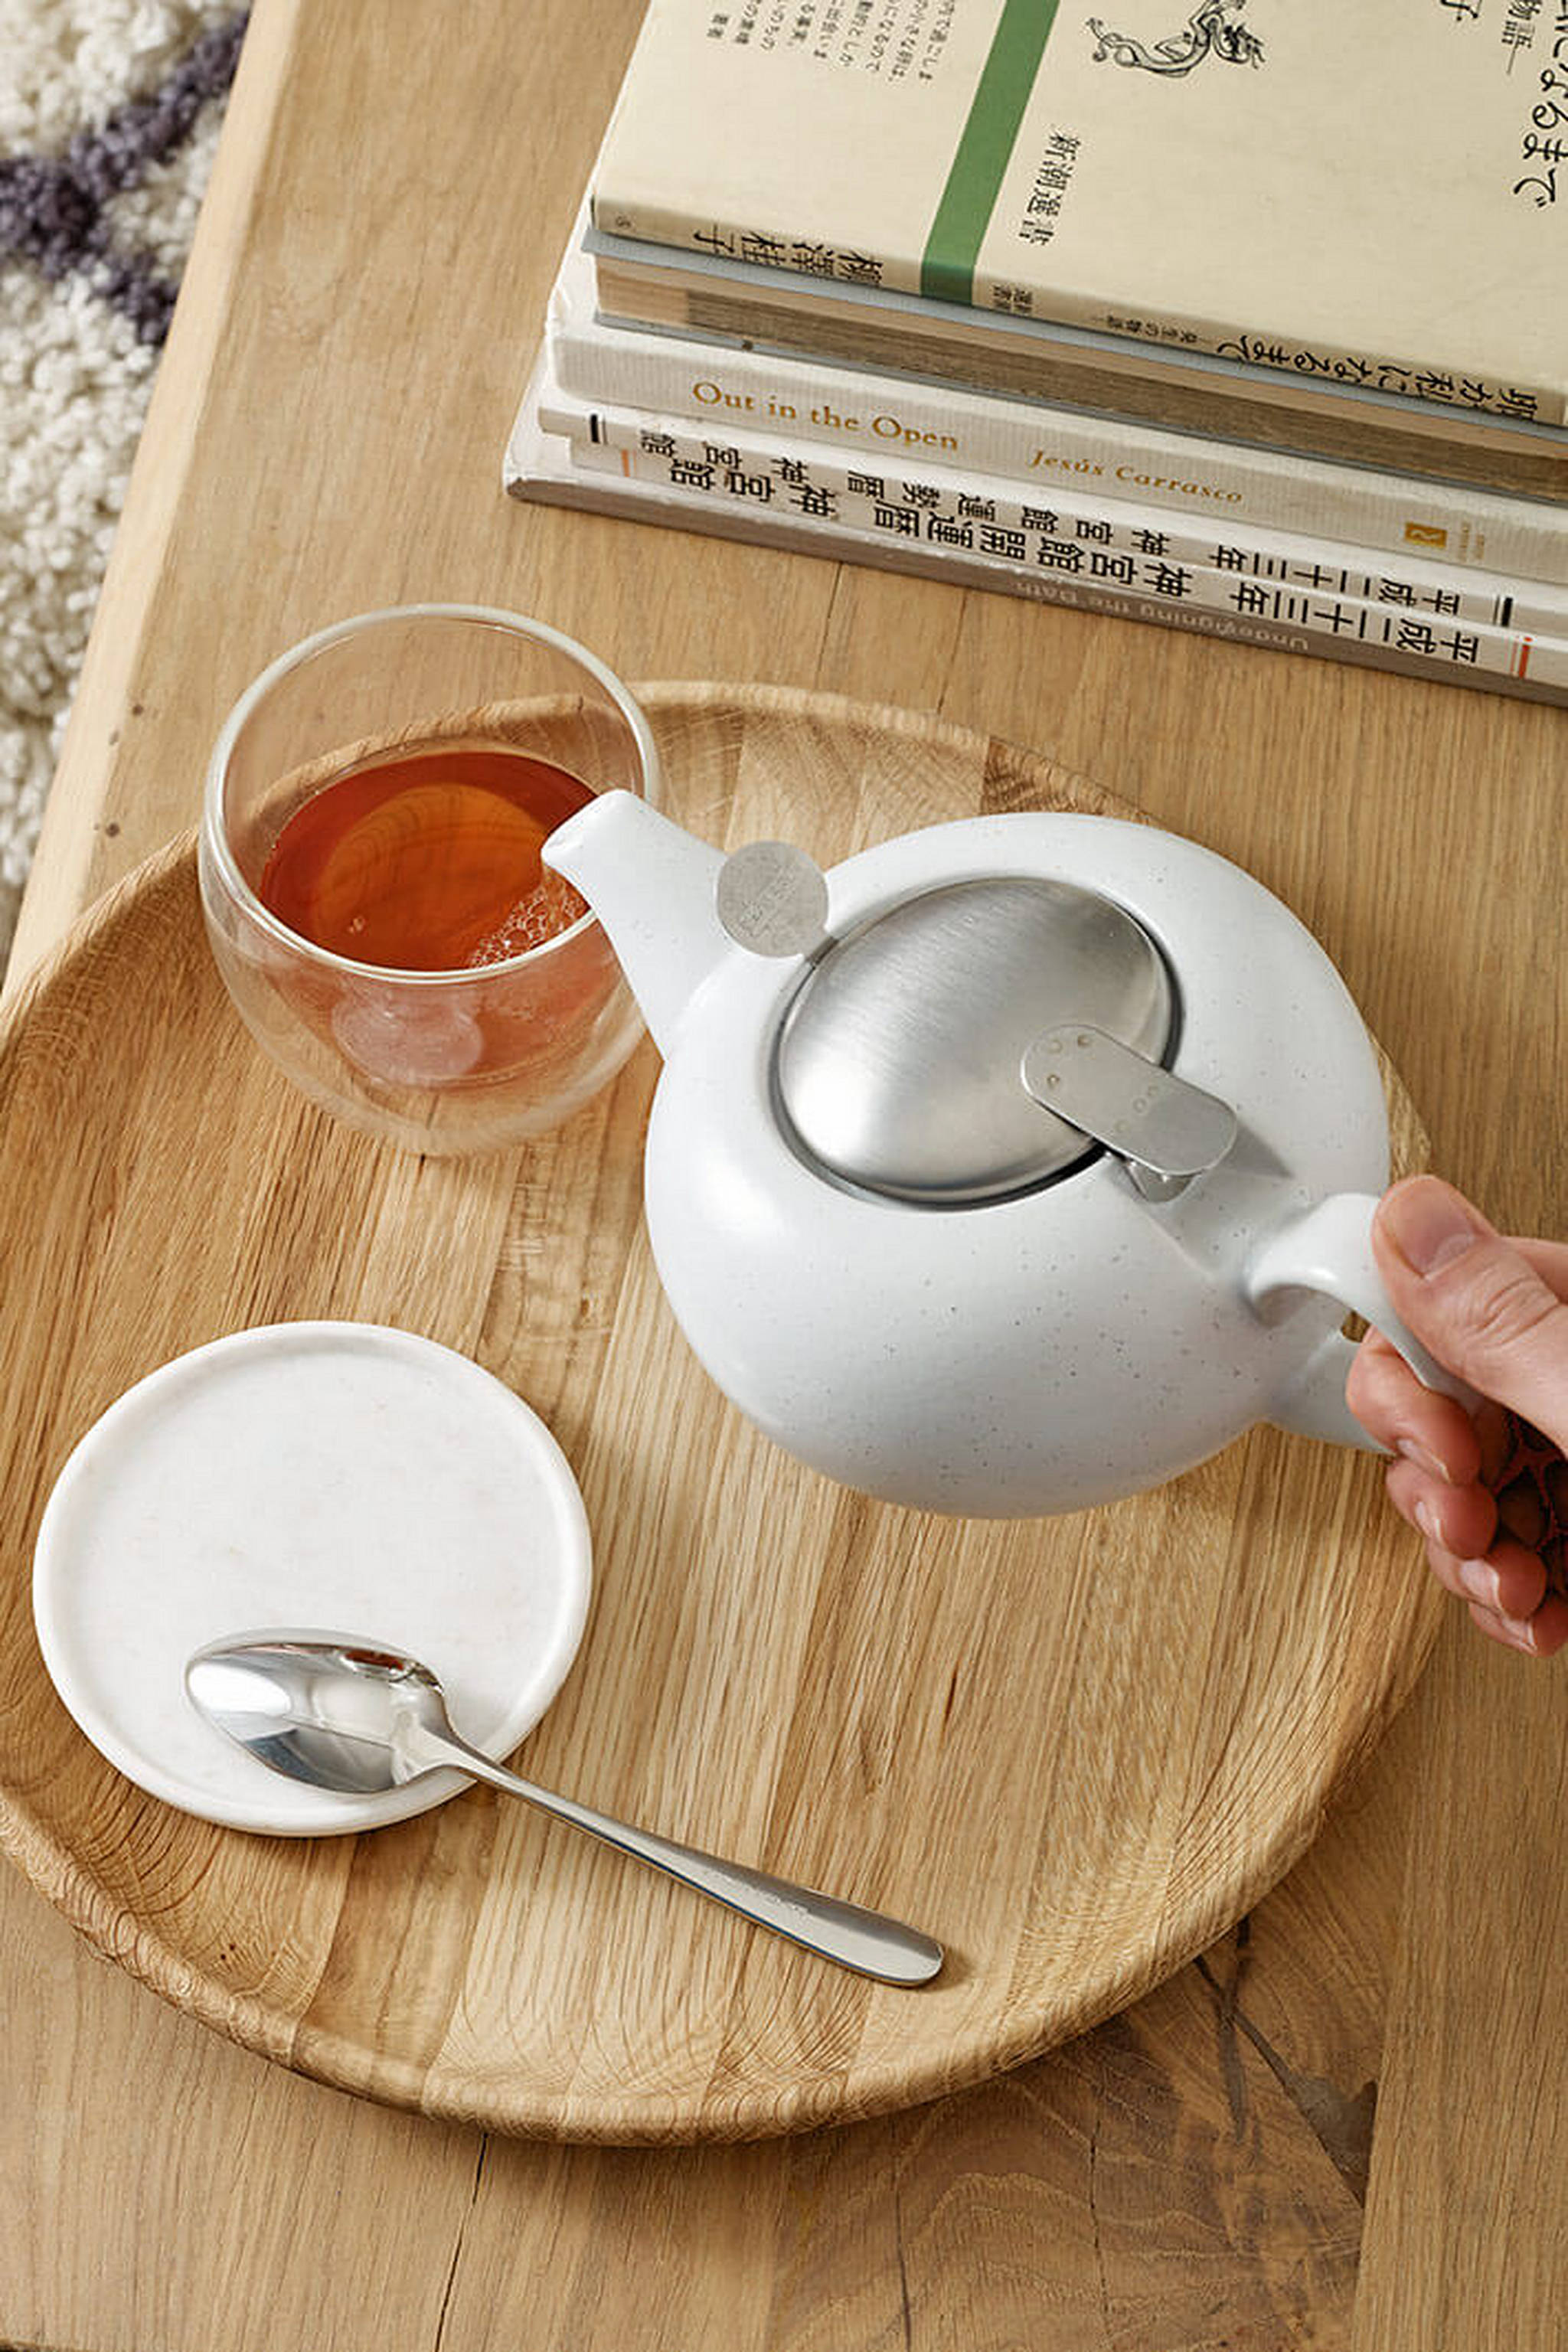 Room for Wellbeing: Tea cup set